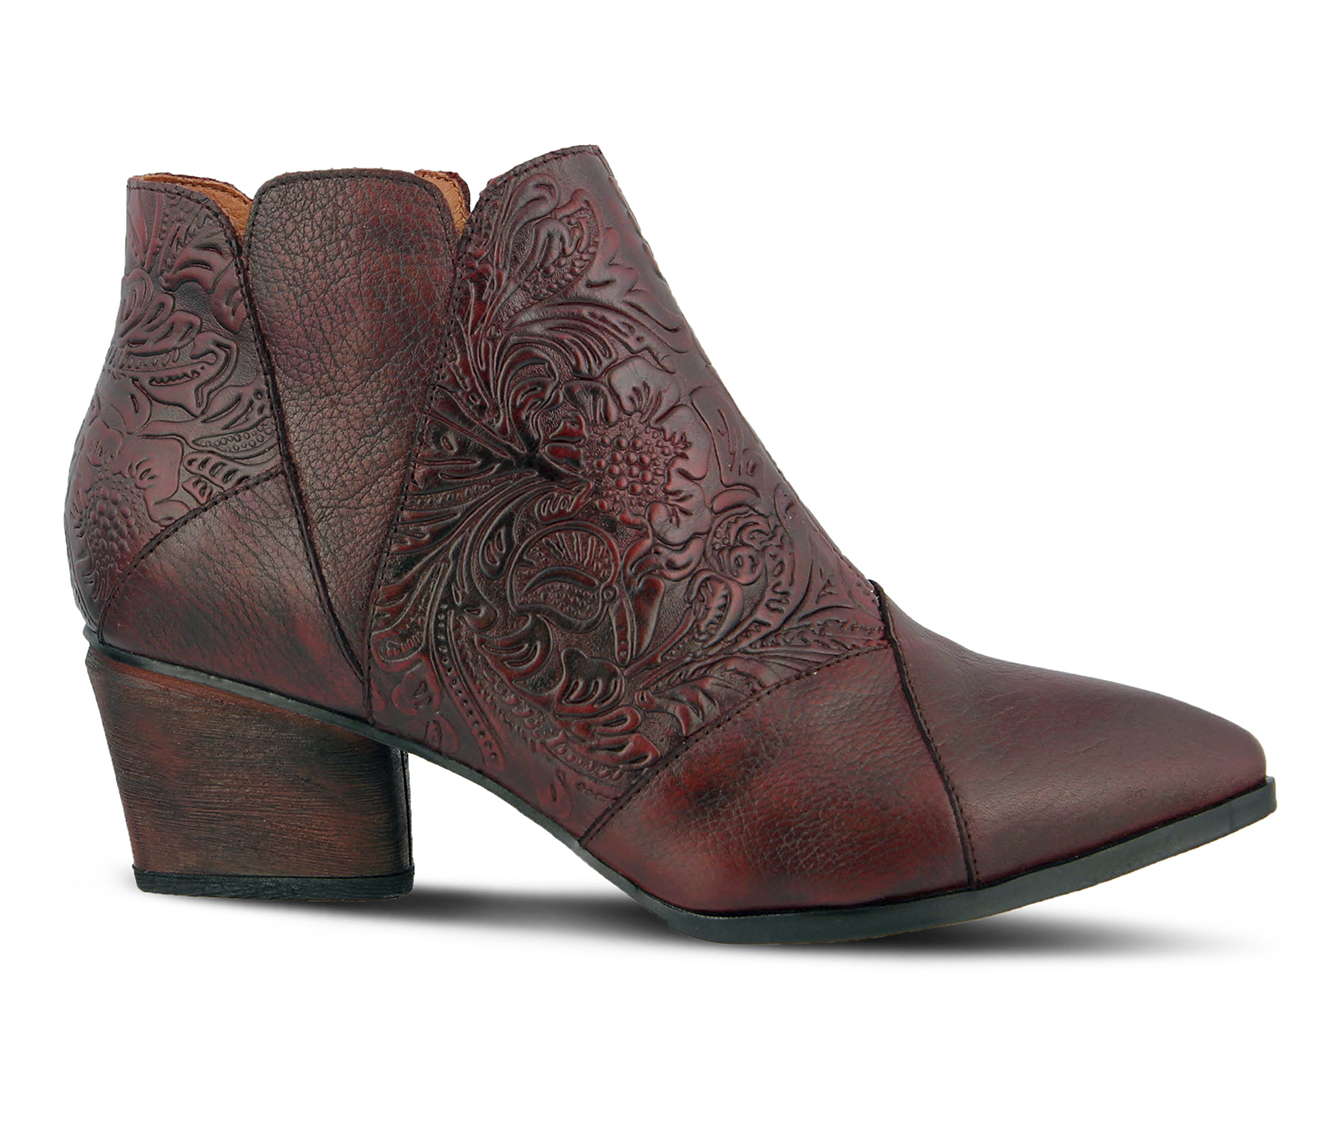 L'Artiste Melodie Women's Boots (Red Leather)